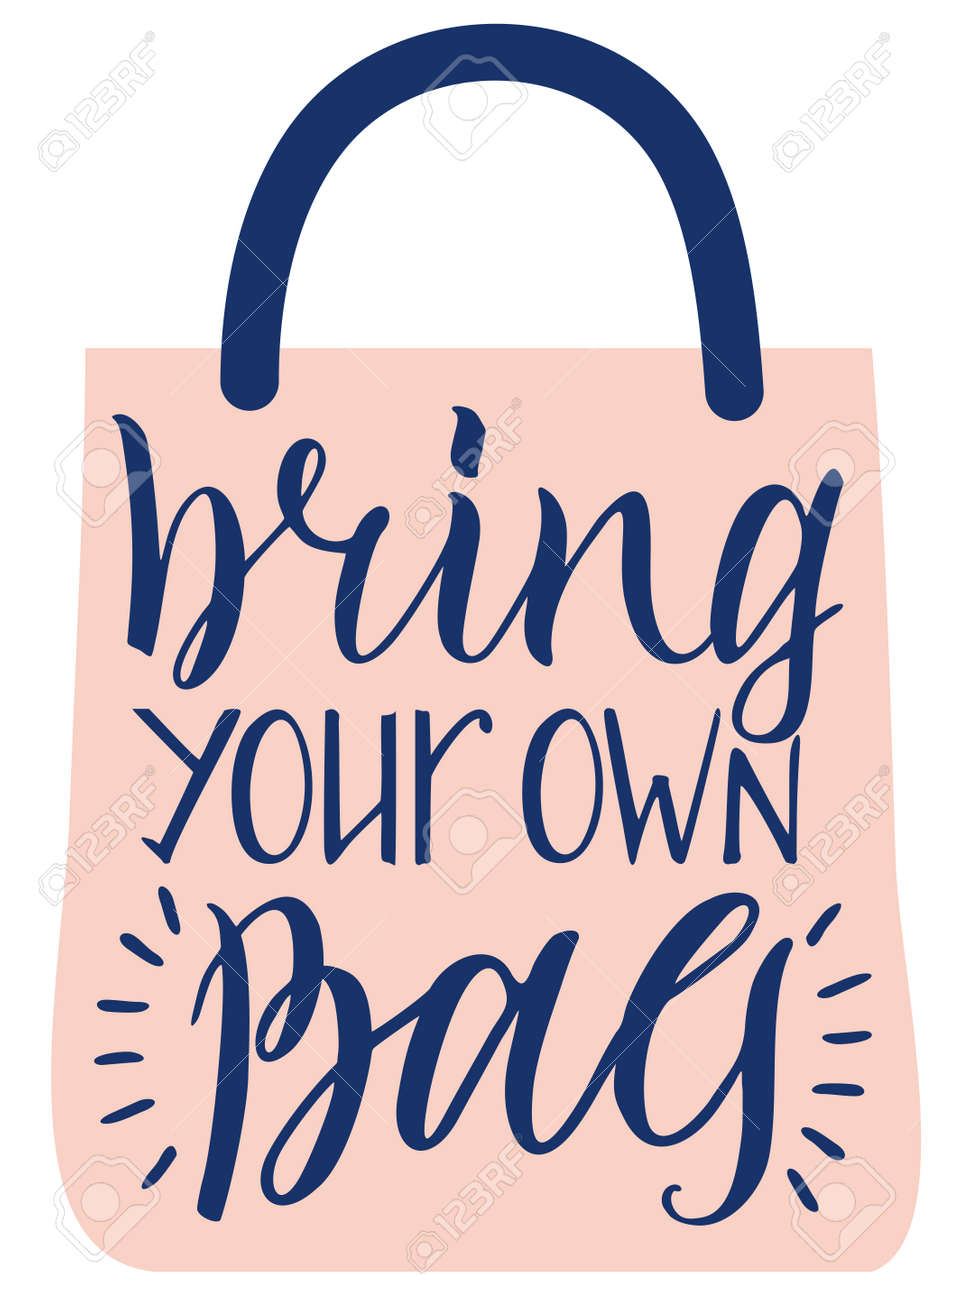 Bring your own bag. Zero waste concept. Eco bag for eco friendly living. Stylish typography slogan design sign. Vector illustration. - 169743740